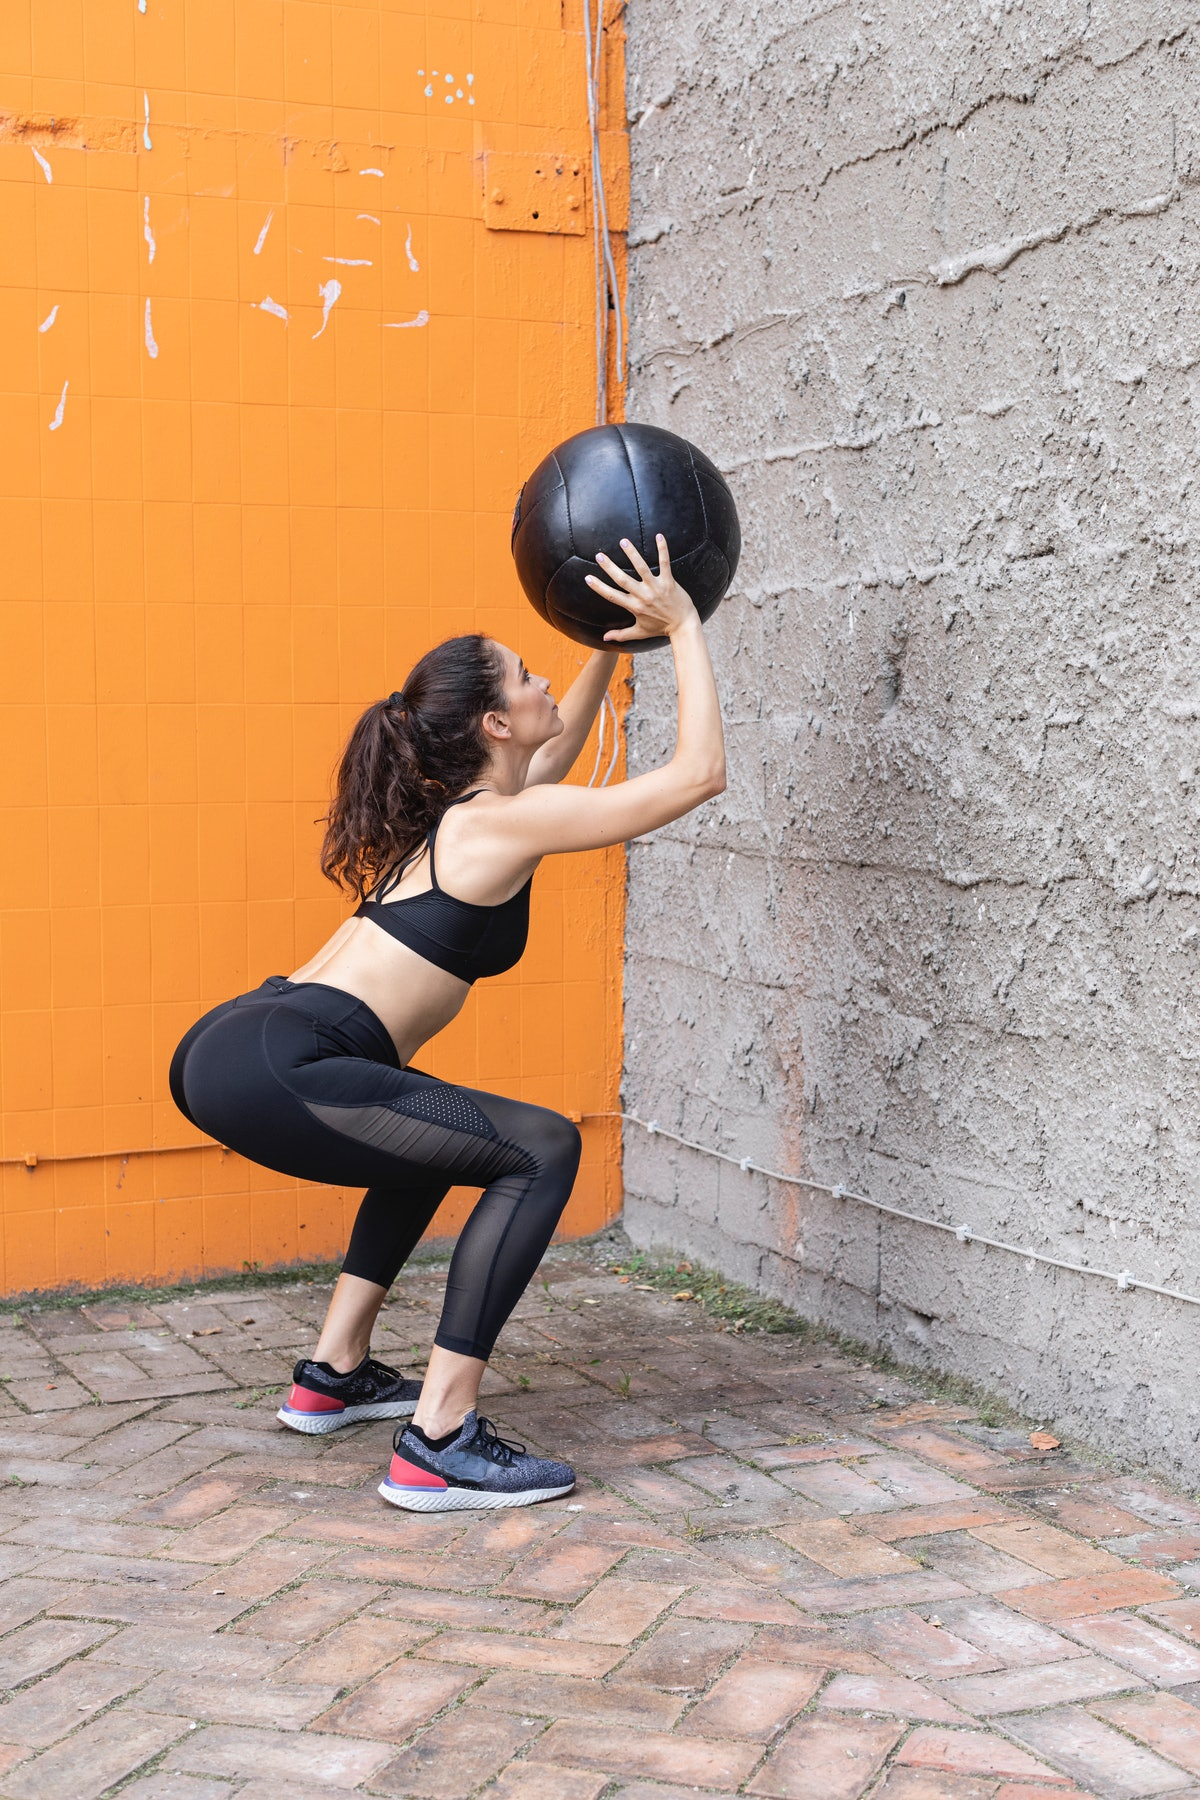 Squat and throw ball against wall in this medicine ball workout.